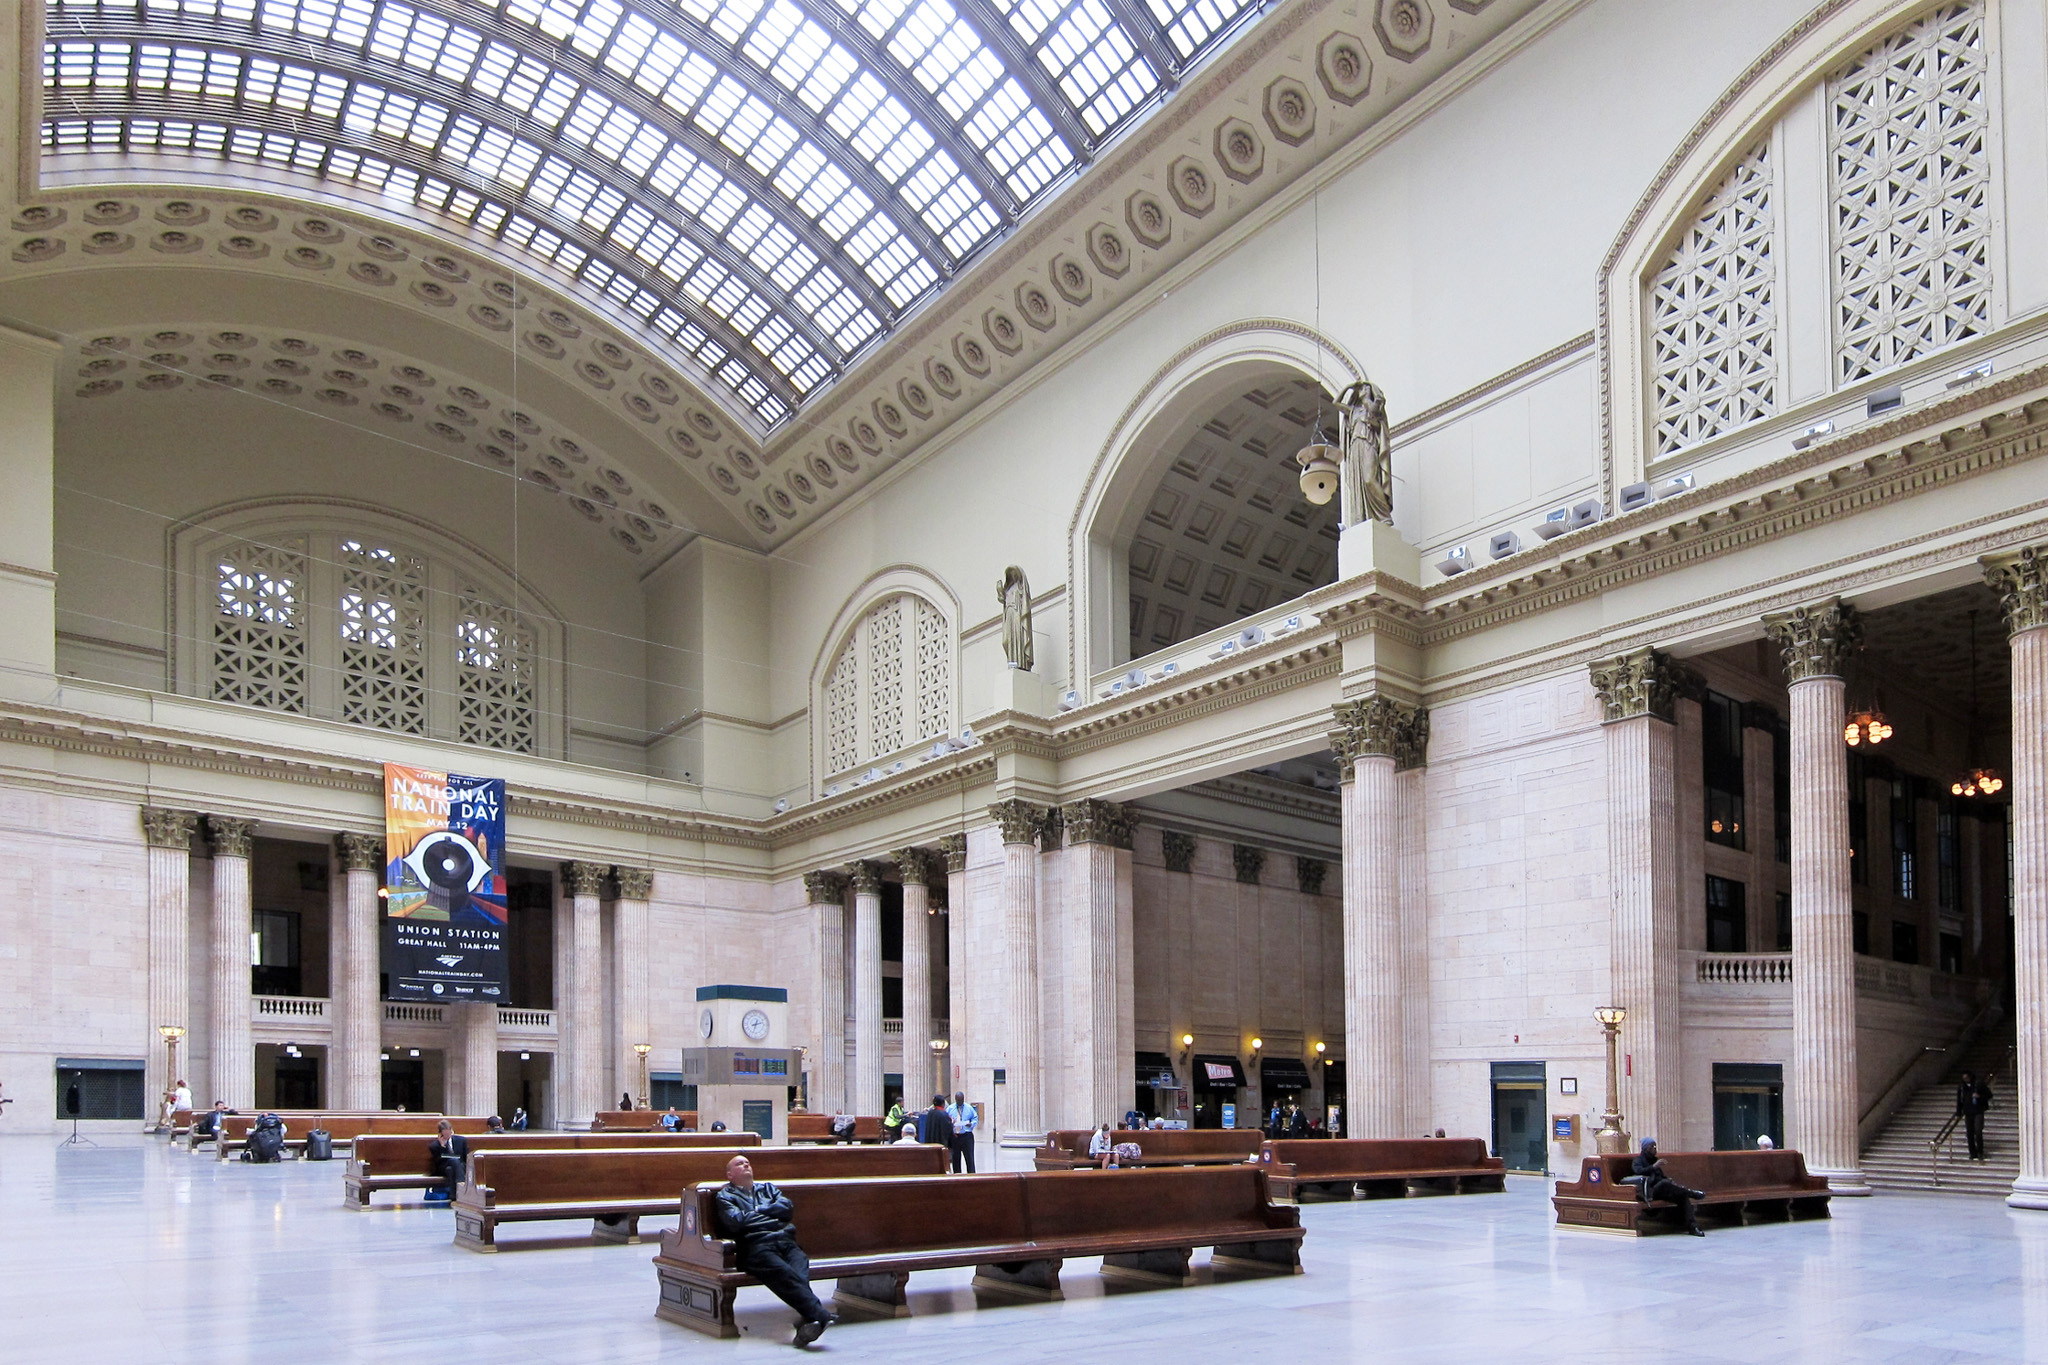 UnionStation.venue.jpg